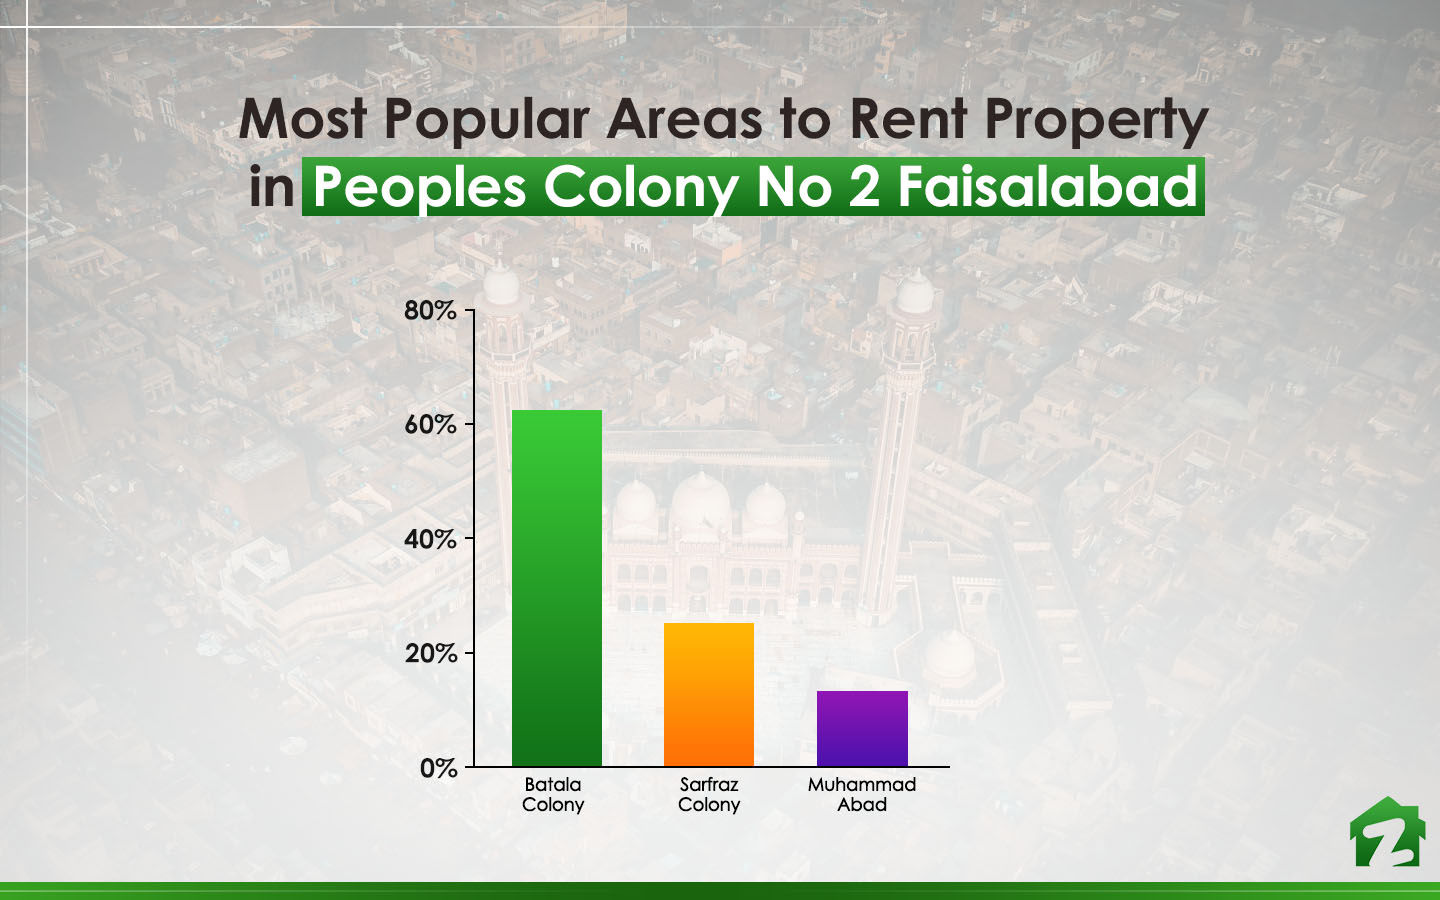 People searched for Batala Colony the most when looking for rent options in Peoples Colony No 2